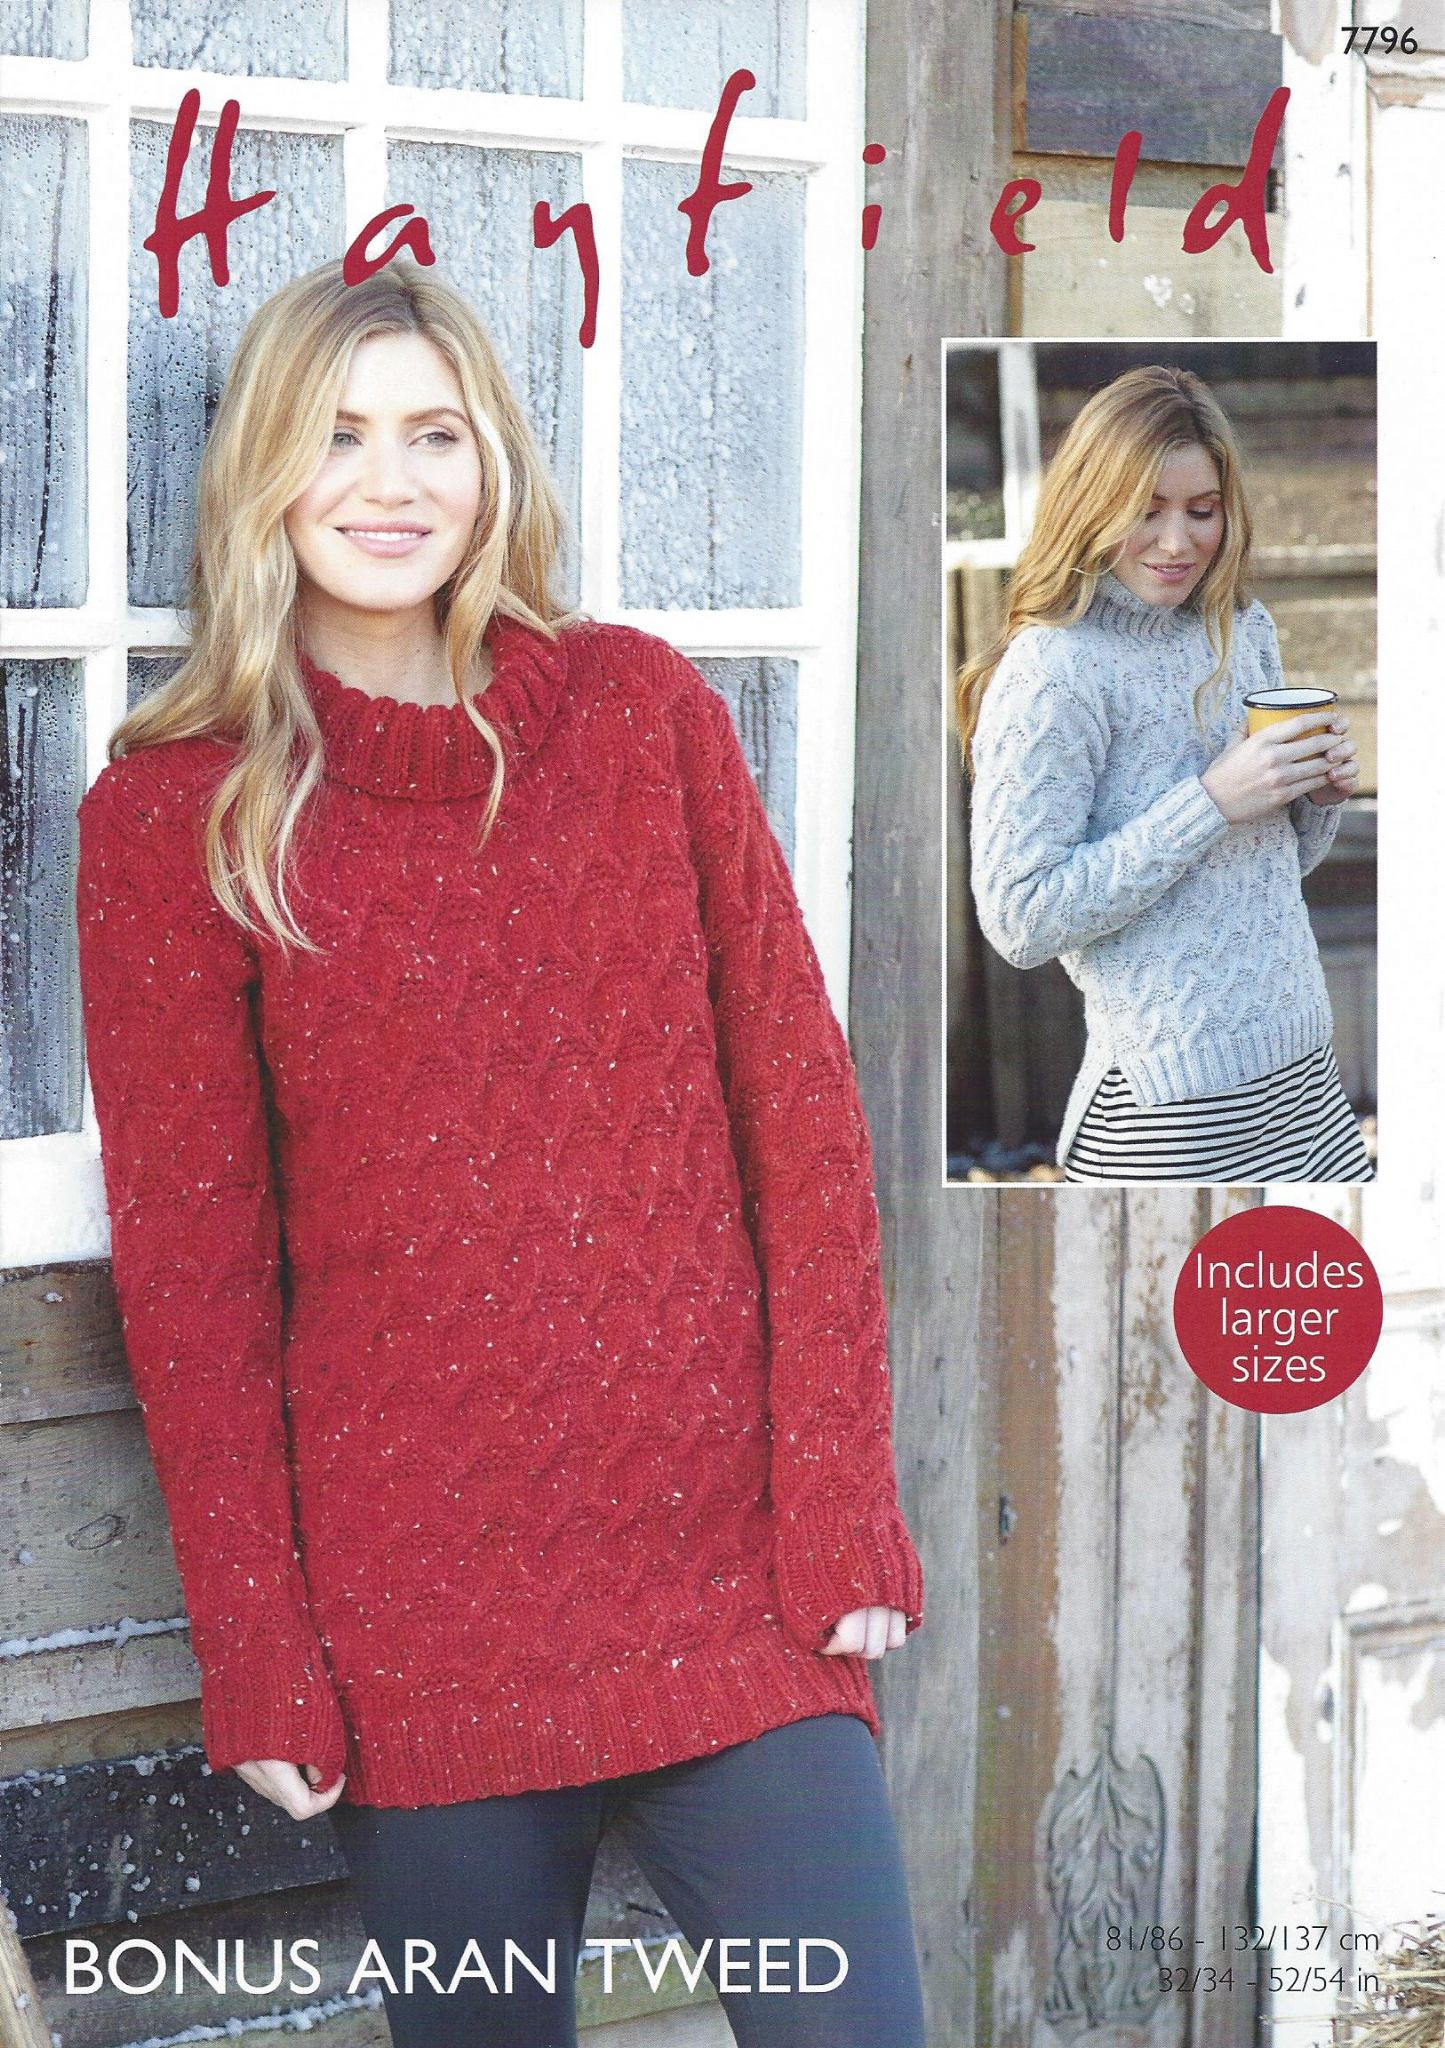 Hayfield bonus aran tweed 7796 sweater dress sweater knitting hayfield bonus aran tweed 7796 sweater dress sweater knitting pattern bankloansurffo Gallery